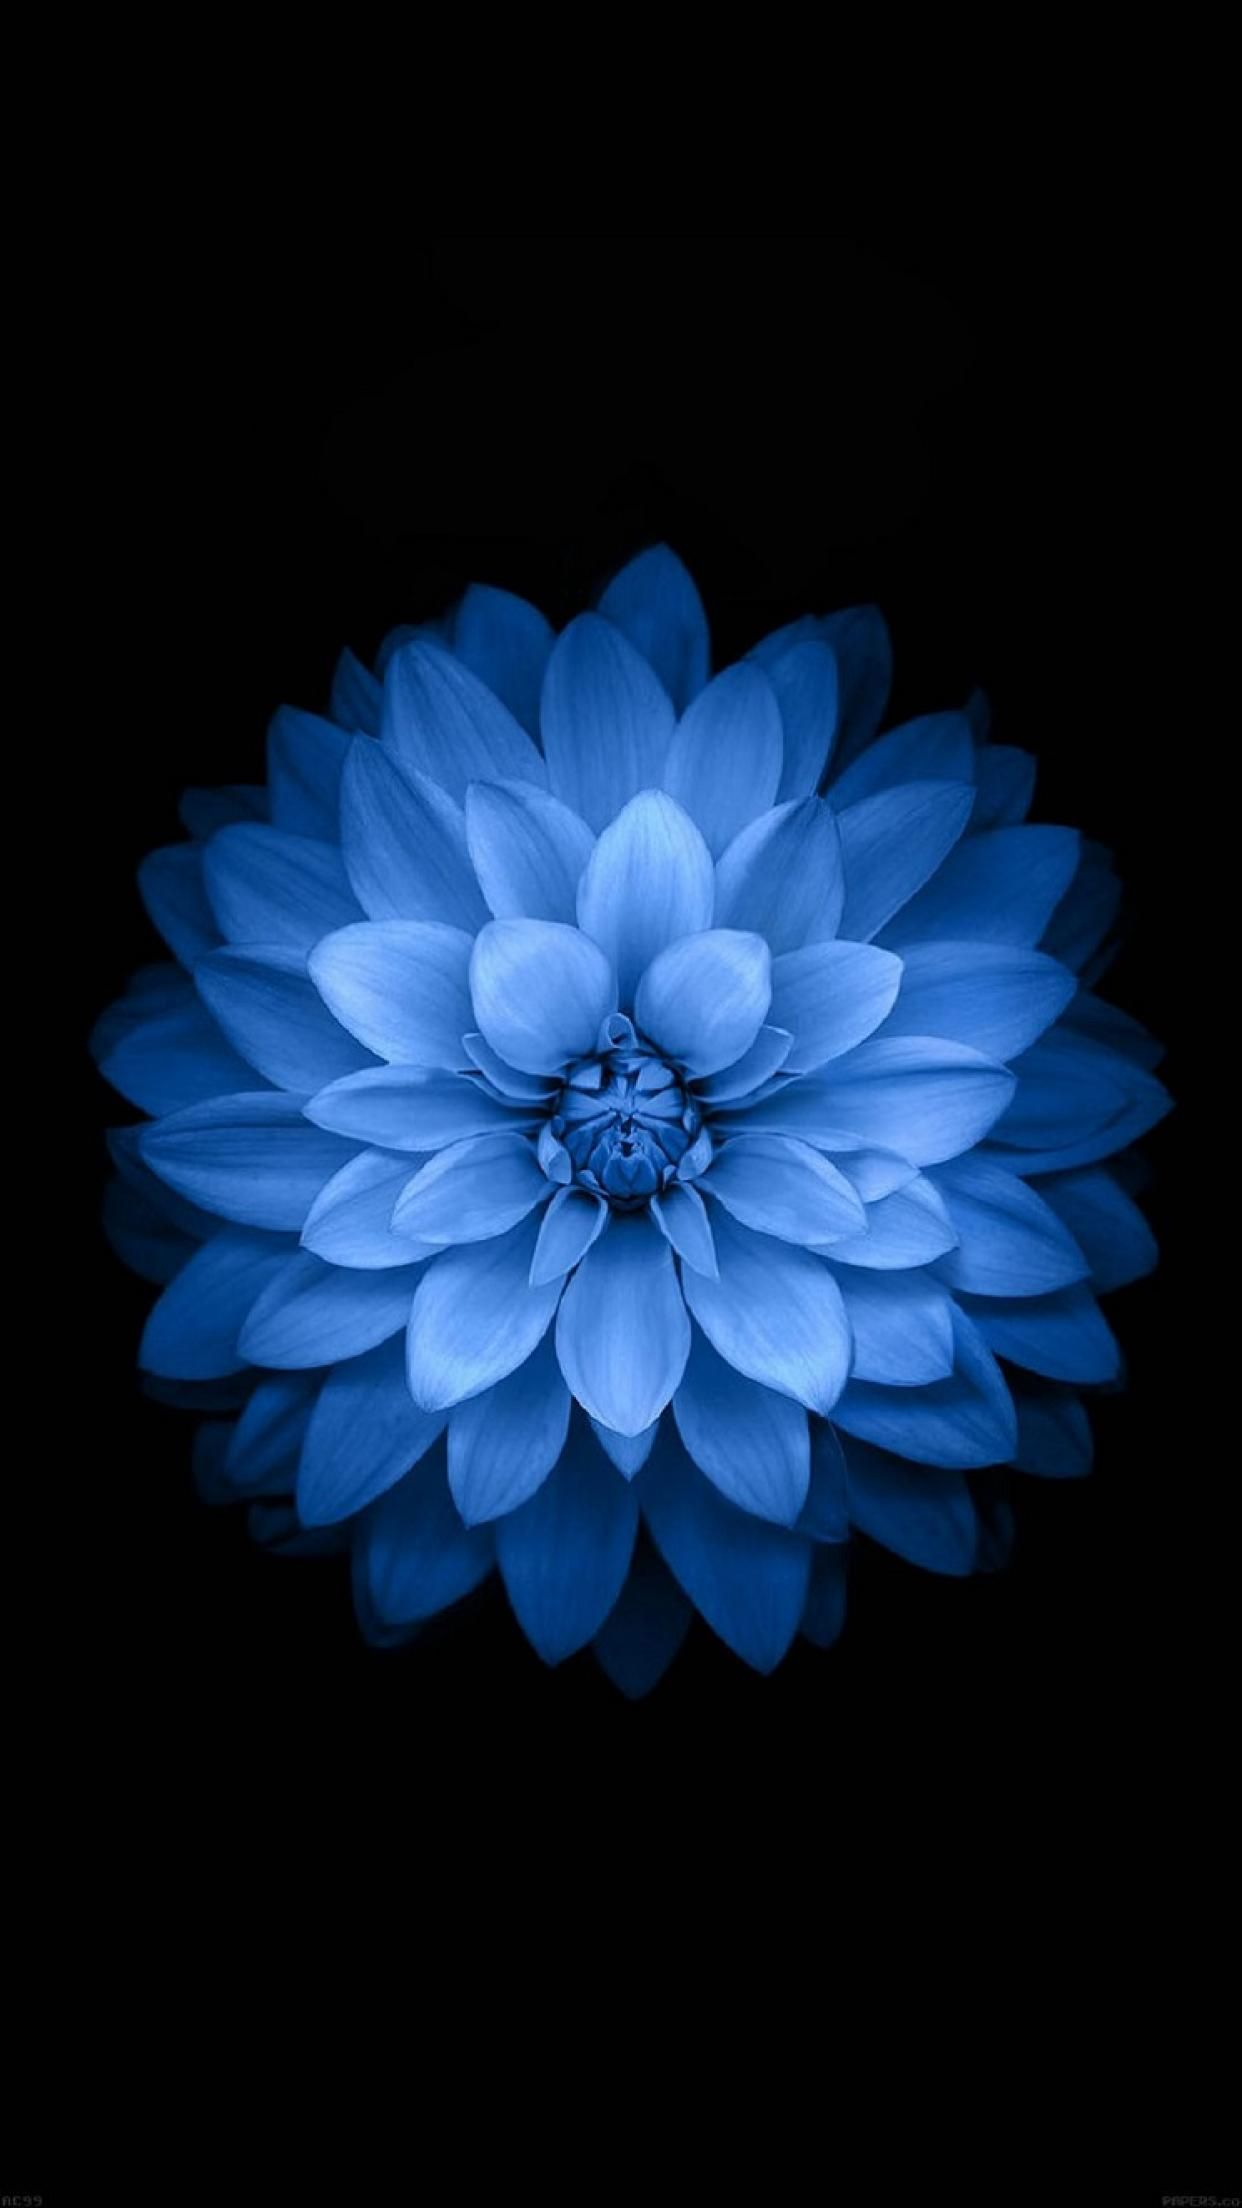 Iphone6 Stock Blue Flower Wallpaper Iphone 7 Wallpaper In 2018